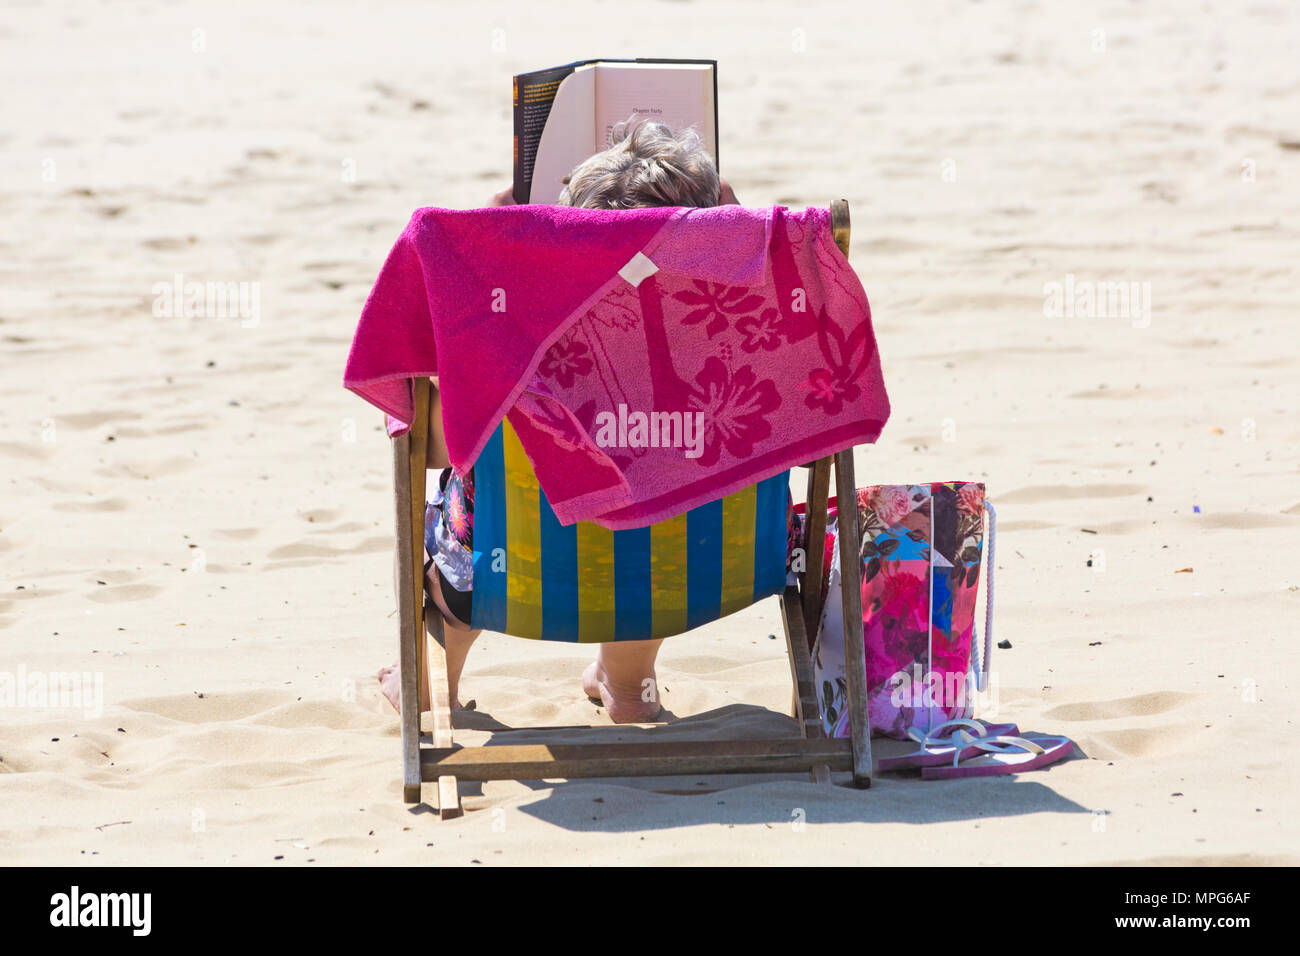 Bournemouth, Dorset, UK. 23rd May 2018. UK weather: lovely warm sunny day with unbroken sunshine, as visitors head to the beach. Woman reading book in deckchair - back view. Credit: Carolyn Jenkins/Alamy Live News - Stock Image